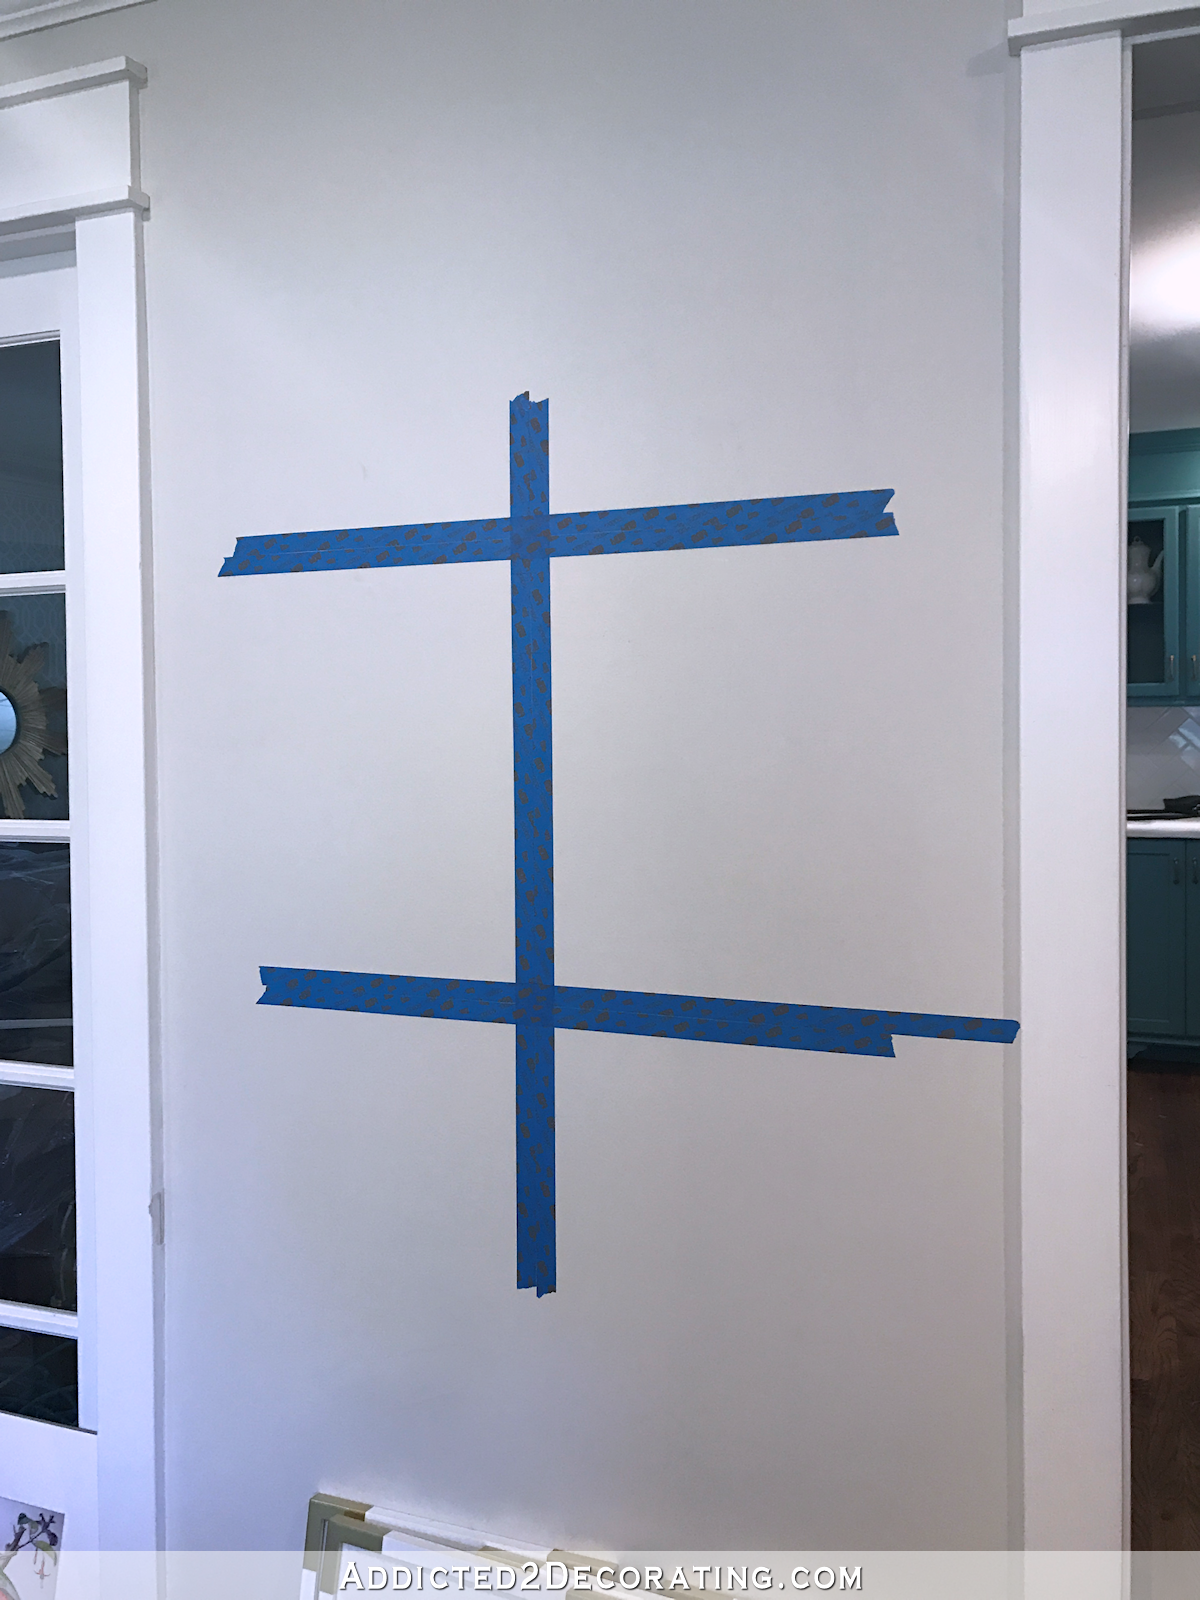 how to hang a perfect gallery wall - use painters tape to mark a grid on the wall - 2